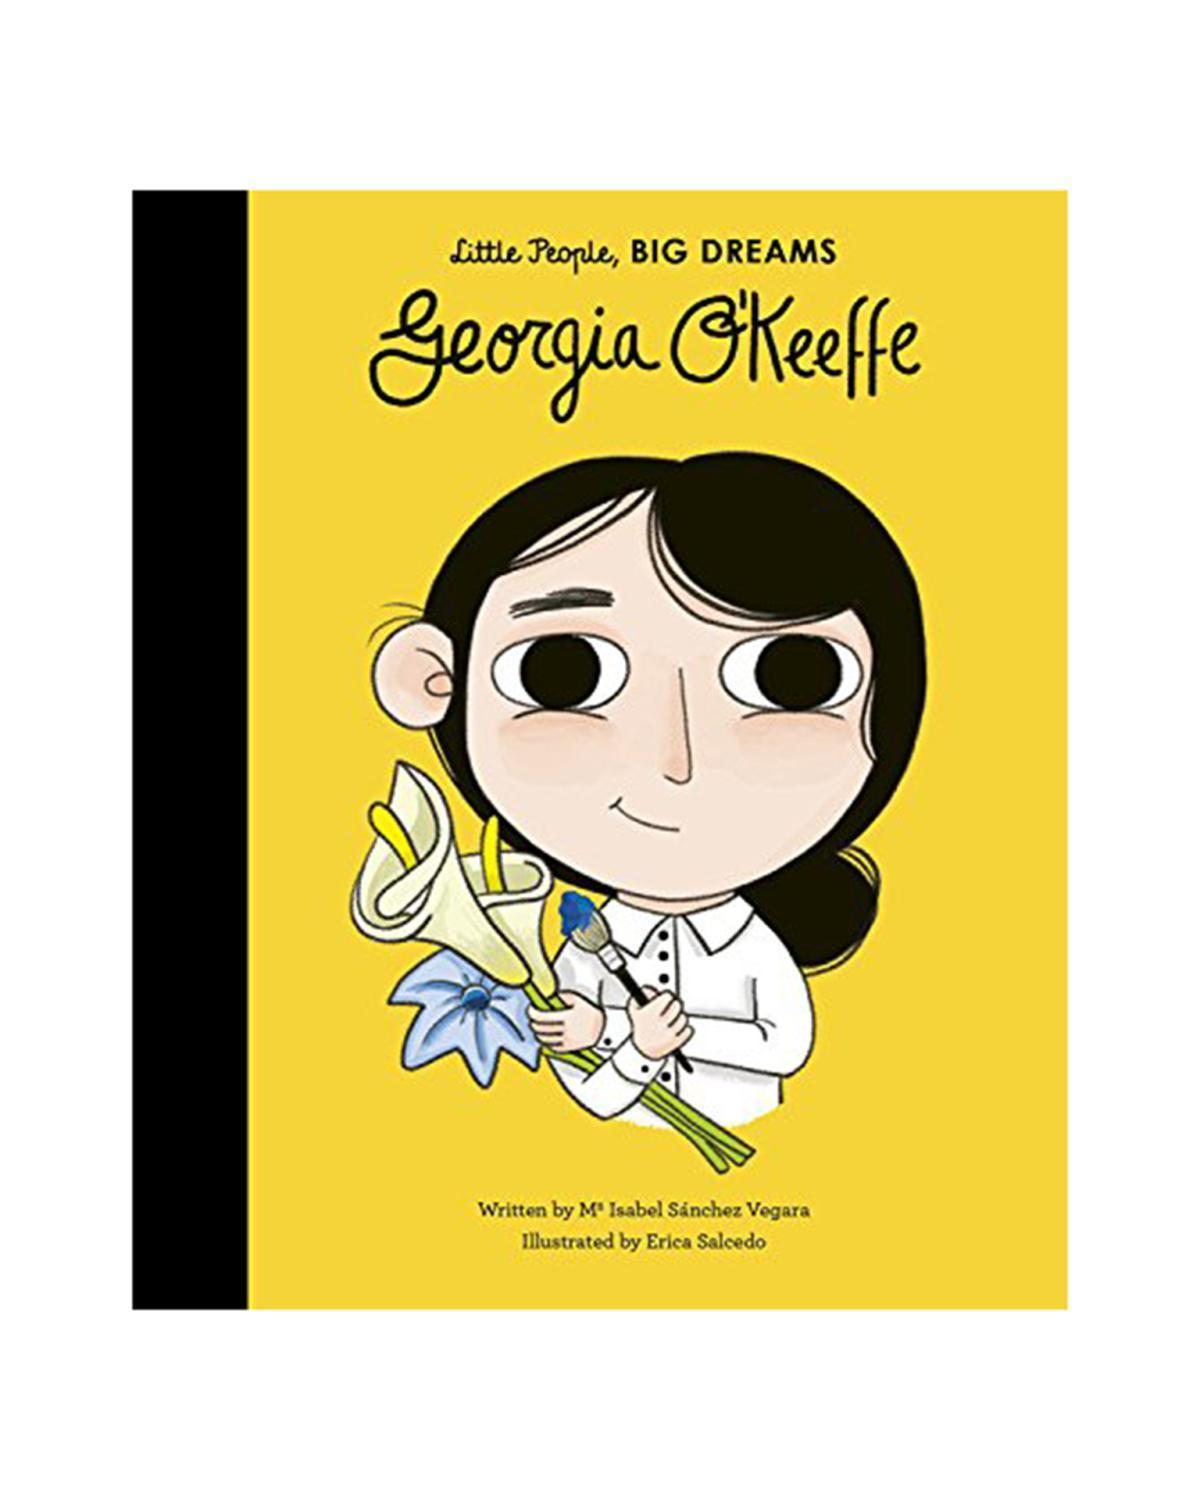 Little quarto publishing group play little people, big dreams: georgia o'keefee